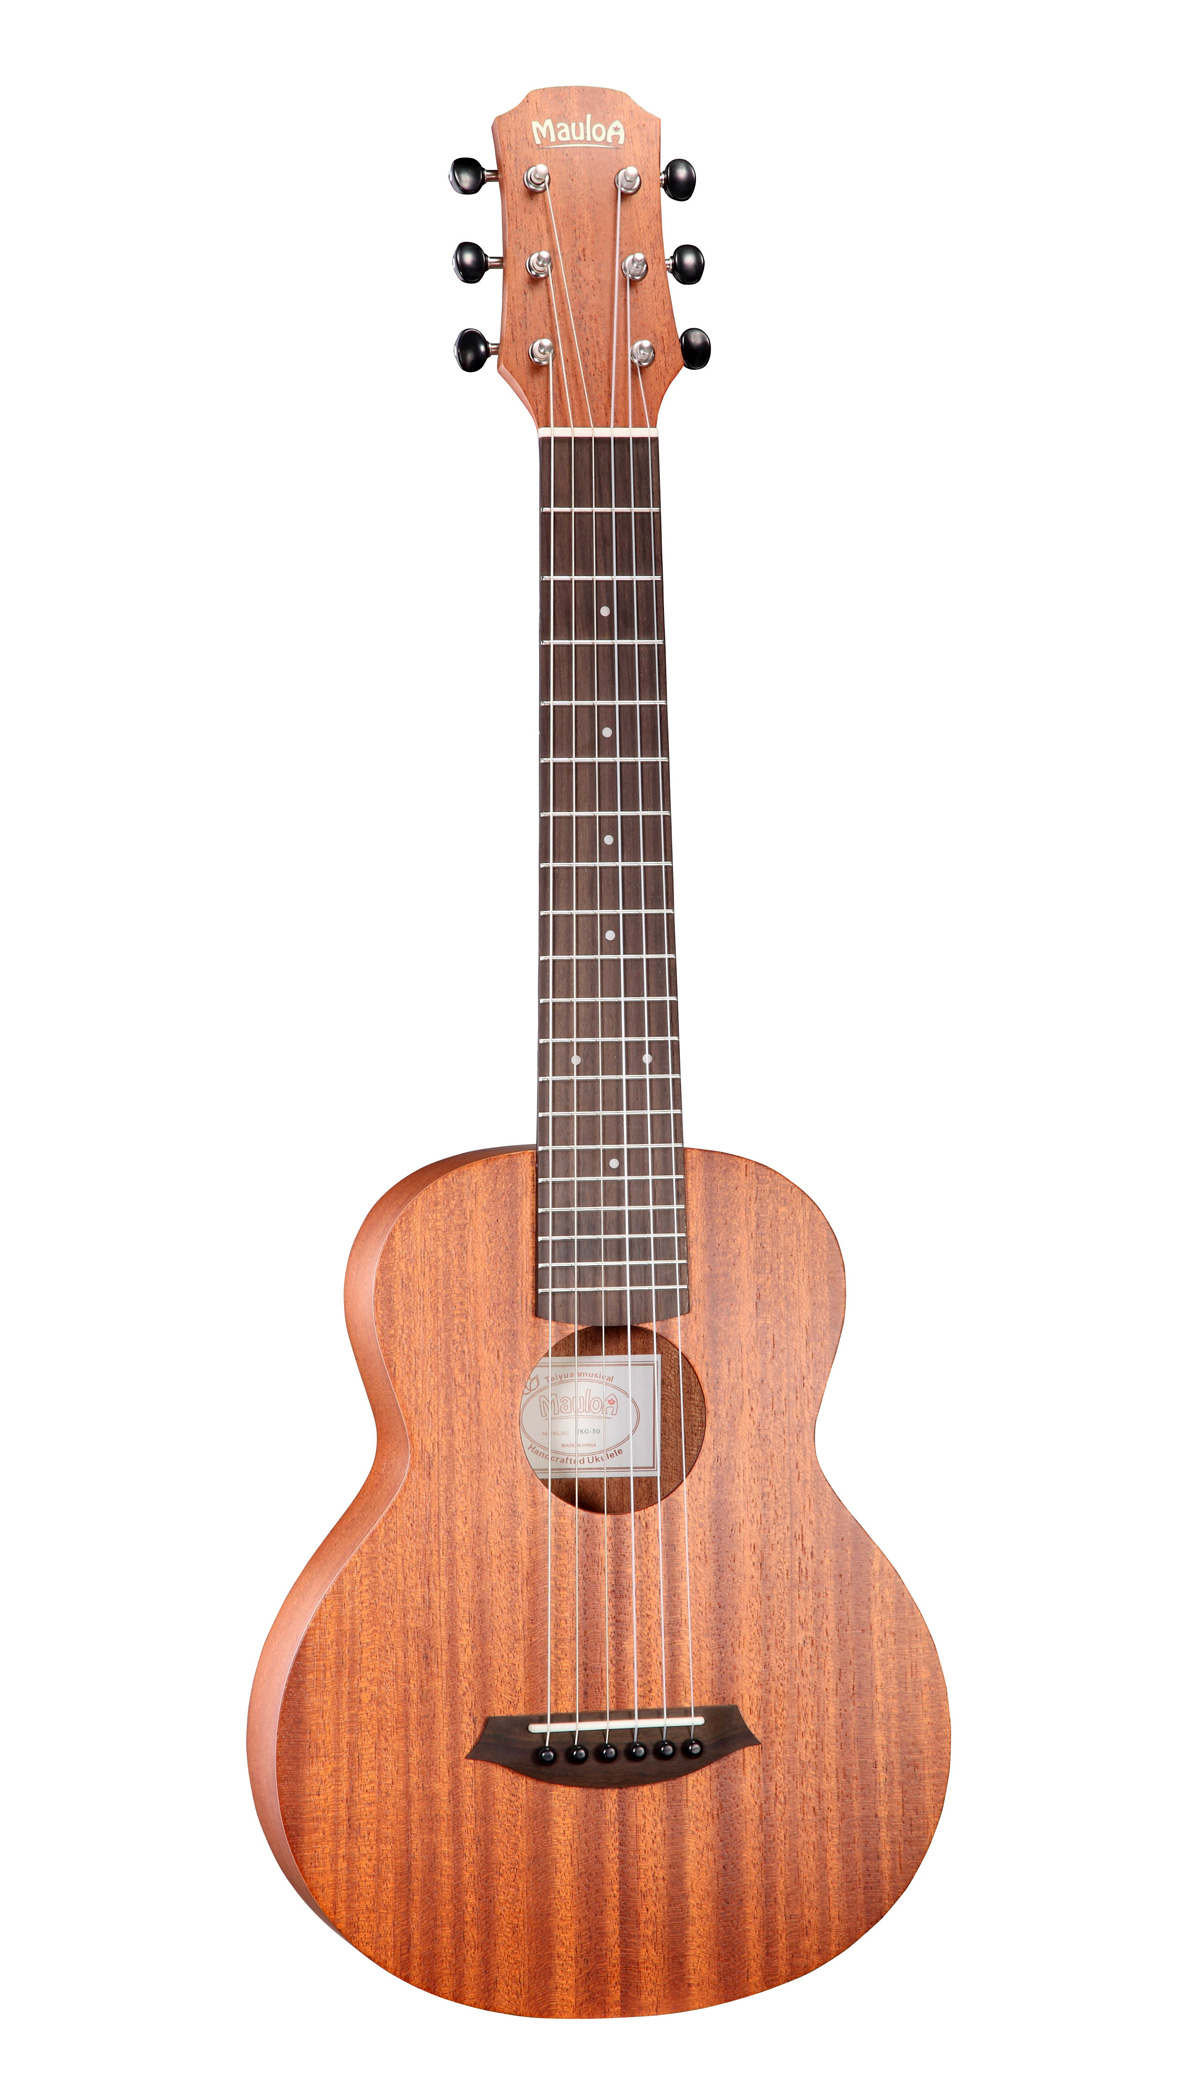 Mahogany Plywood,Guitarlele